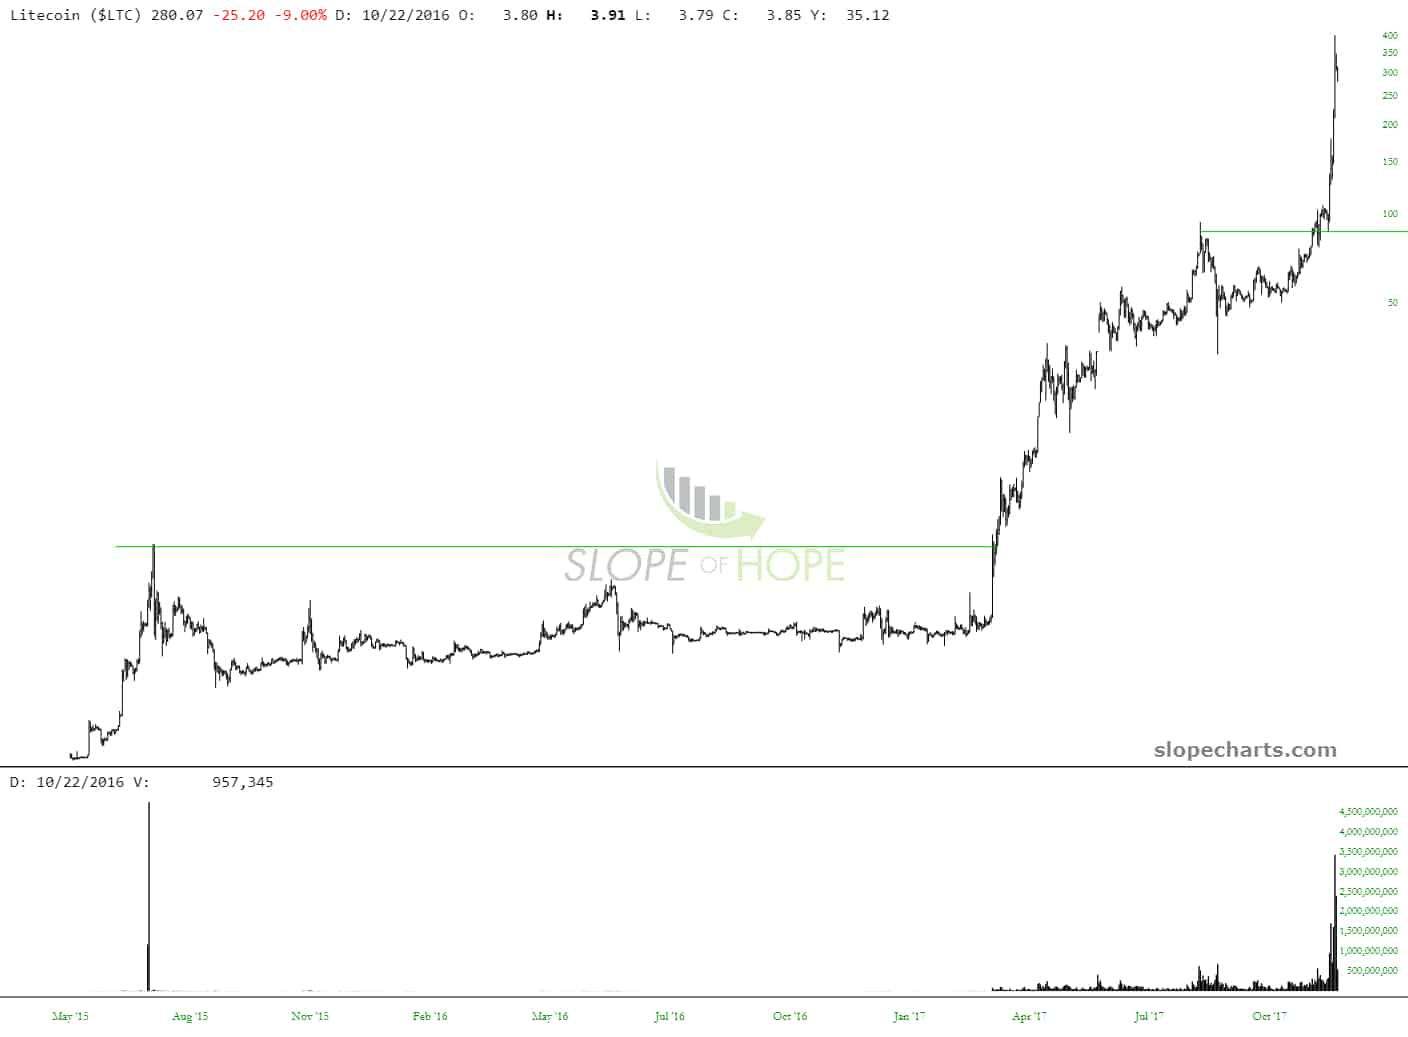 slopechart_$LTC (2)